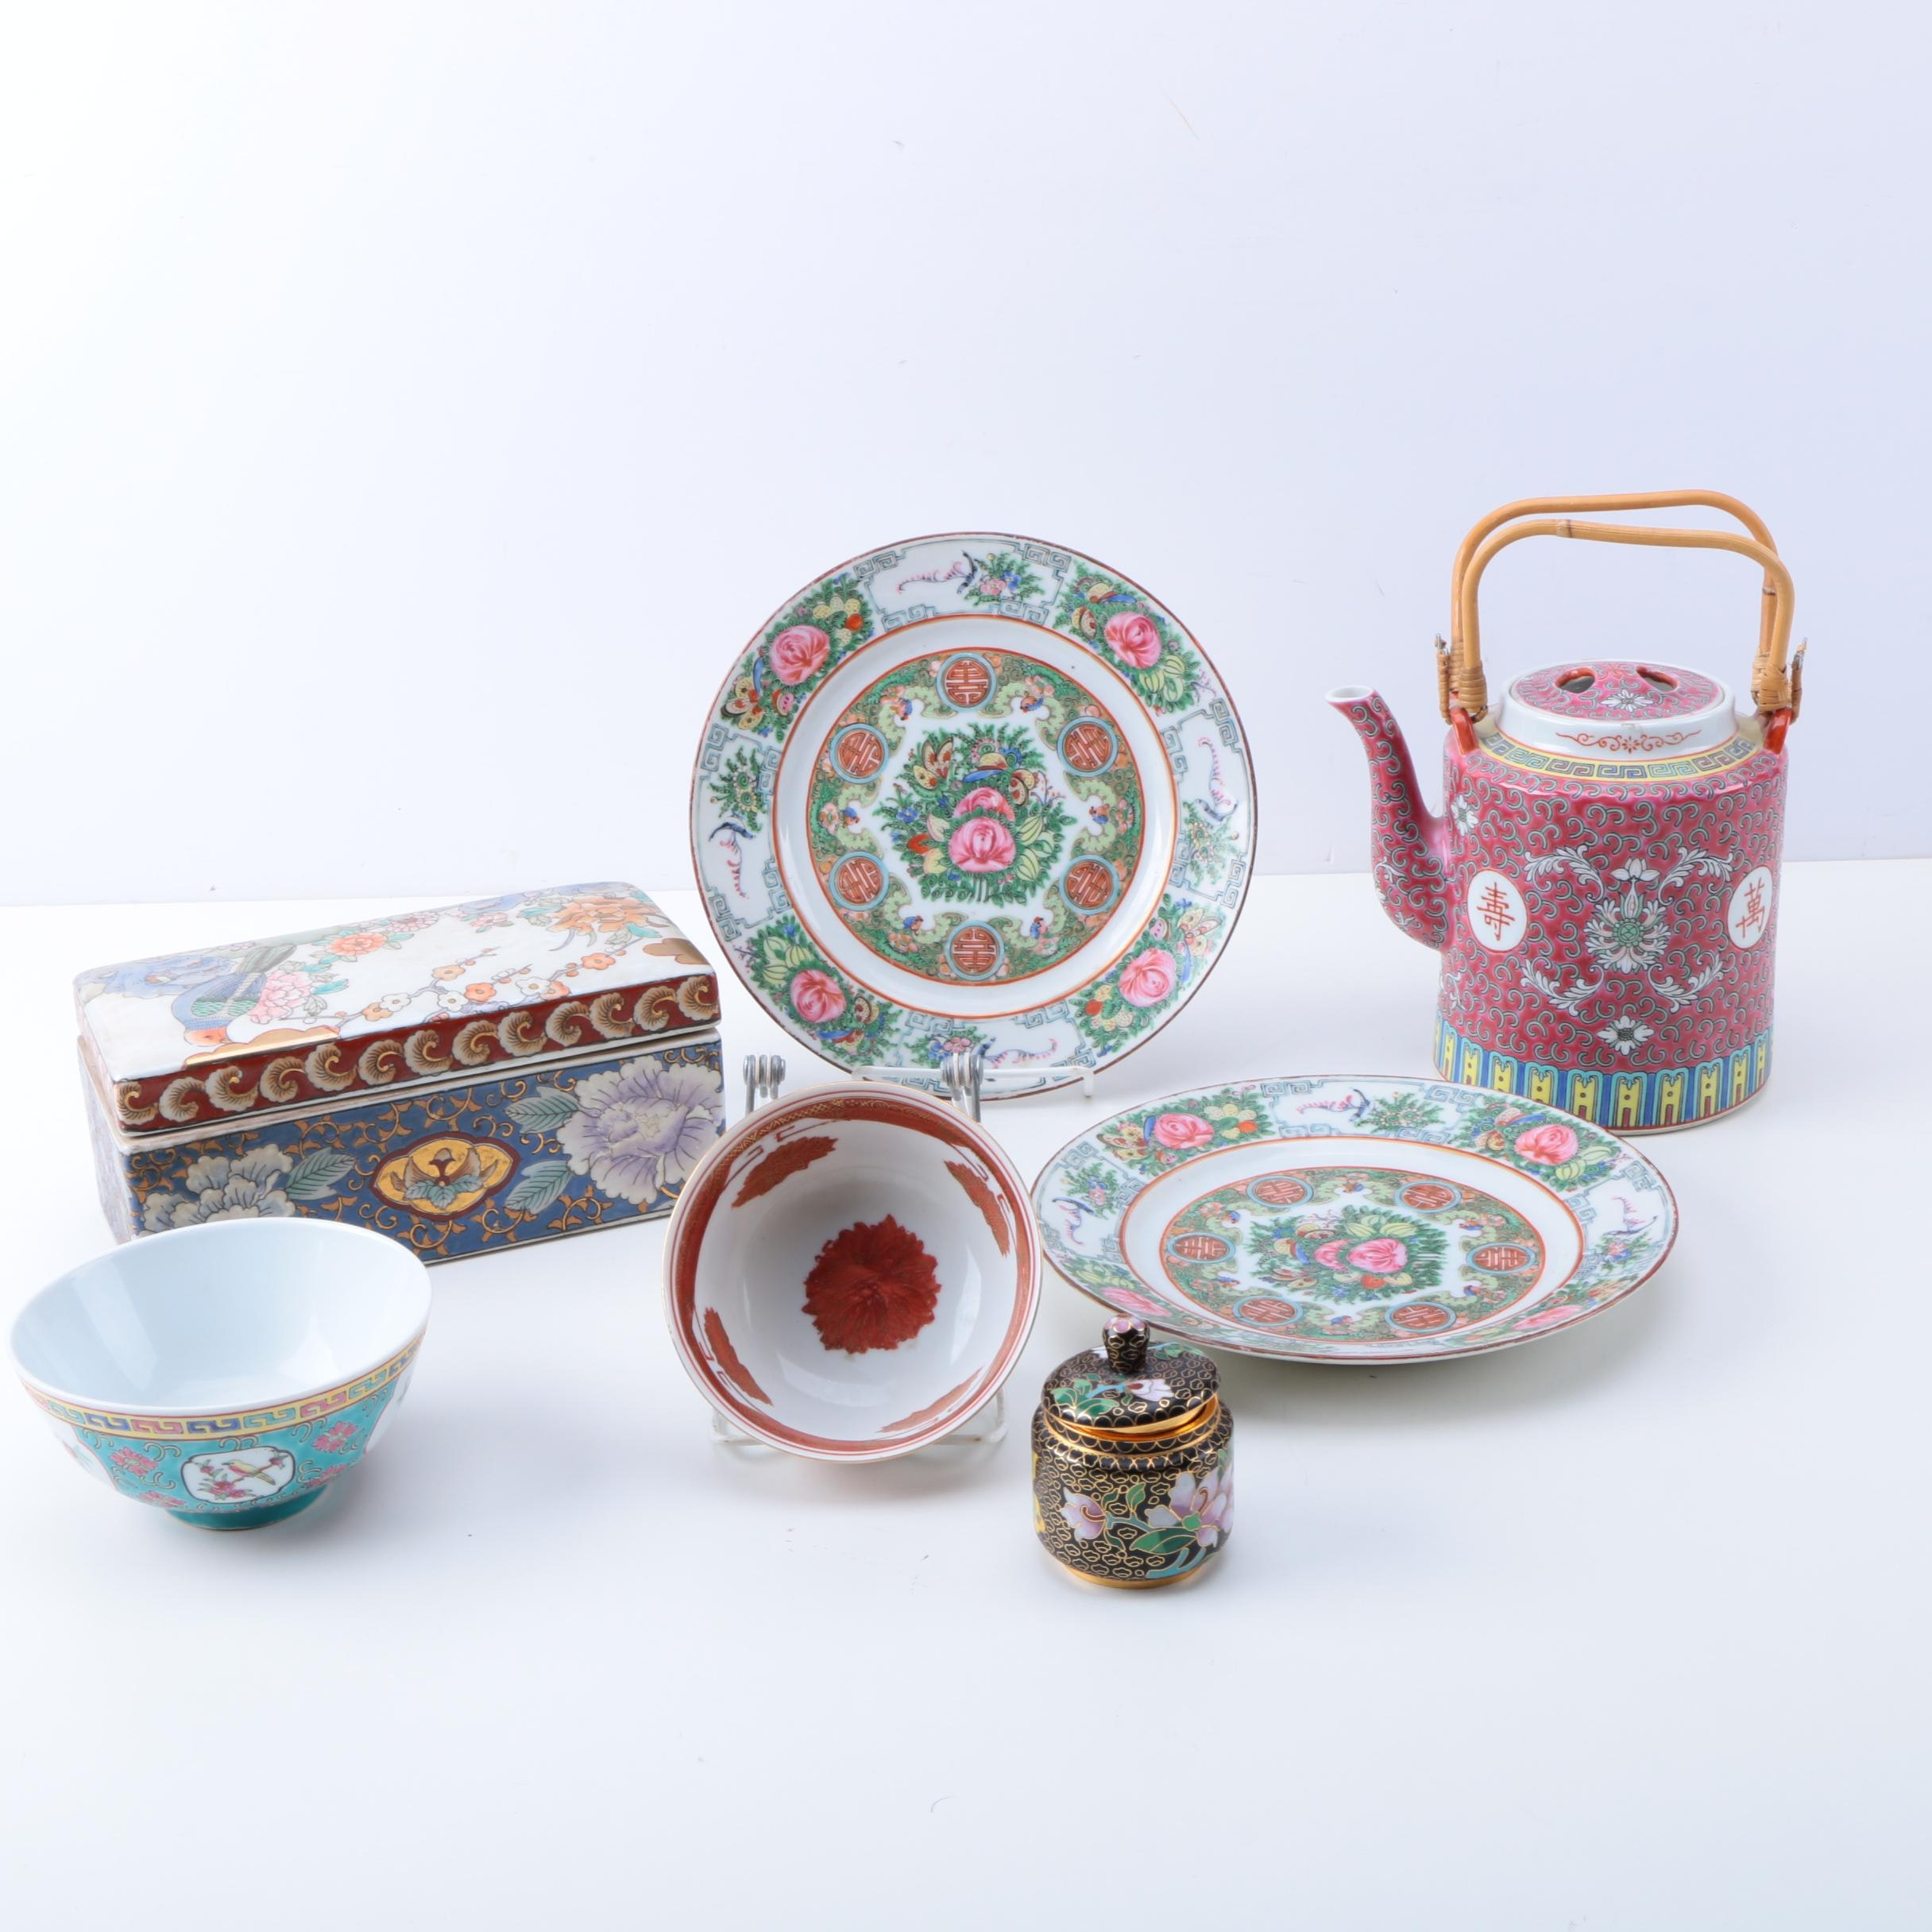 Chinese and Japanese Ceramic and Metal Décor